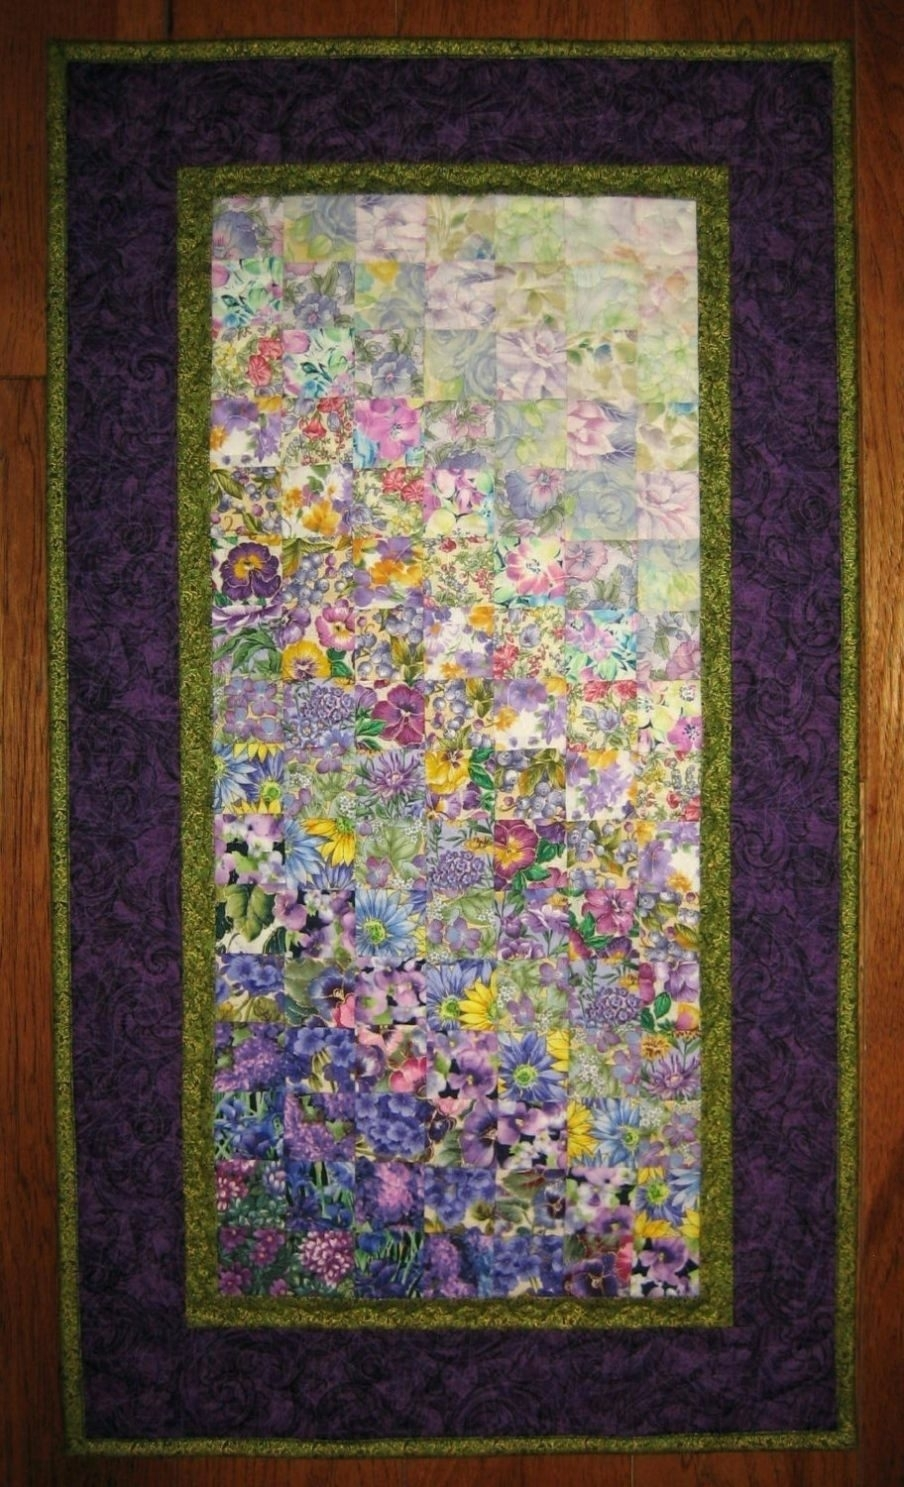 Wall Arts ~ Fabric Panel Wall Art How To Make Large Fabric Panel Intended For Latest Fabric Panel Wall Art With Embellishments (View 6 of 15)